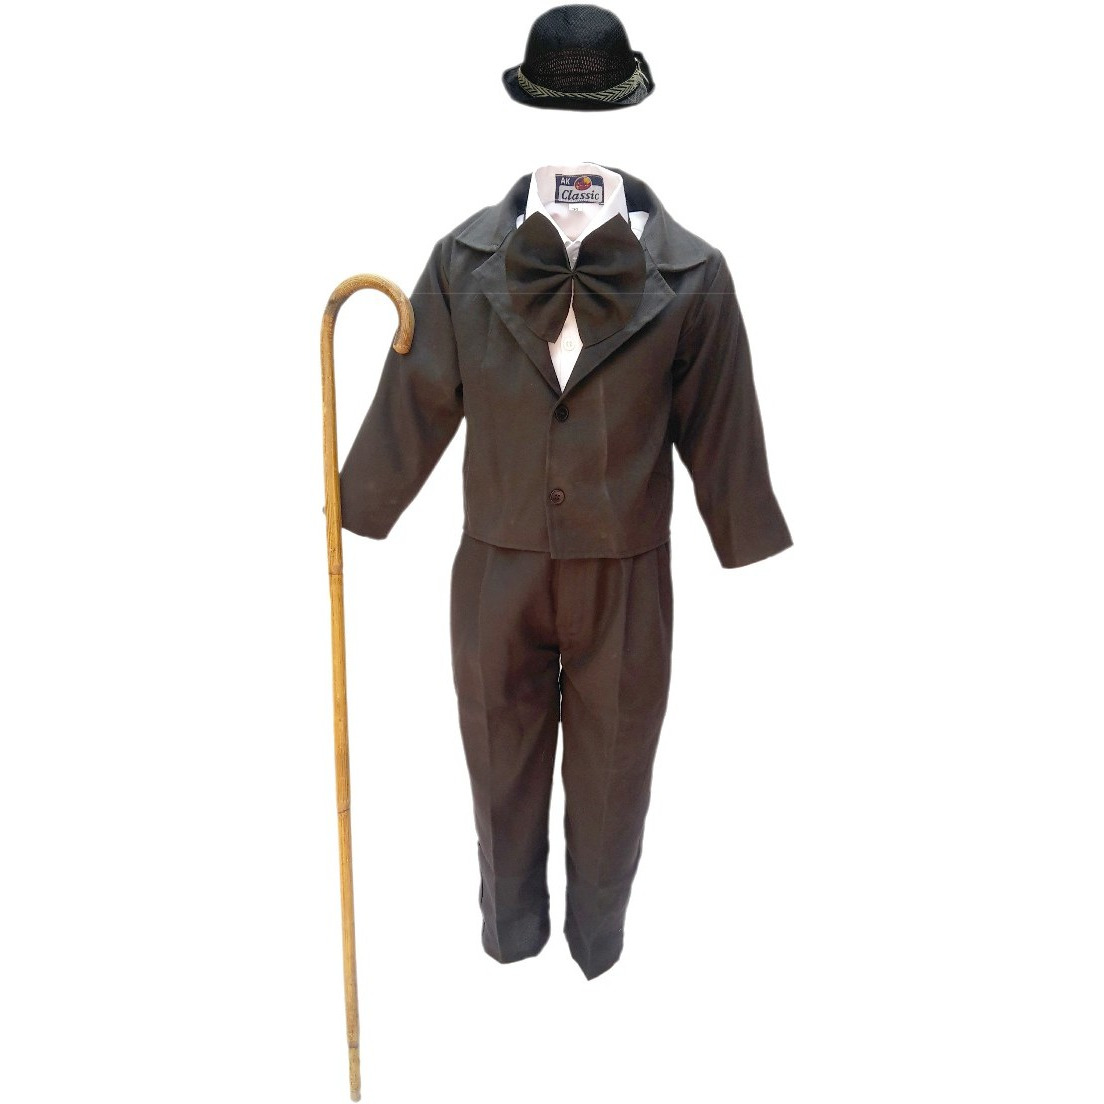 KFD Charlie Chaplin fancy dress for kids,Comic Character Costume for Annual function/Theme Party/Competition/Stage Shows/Birthday Party Dress